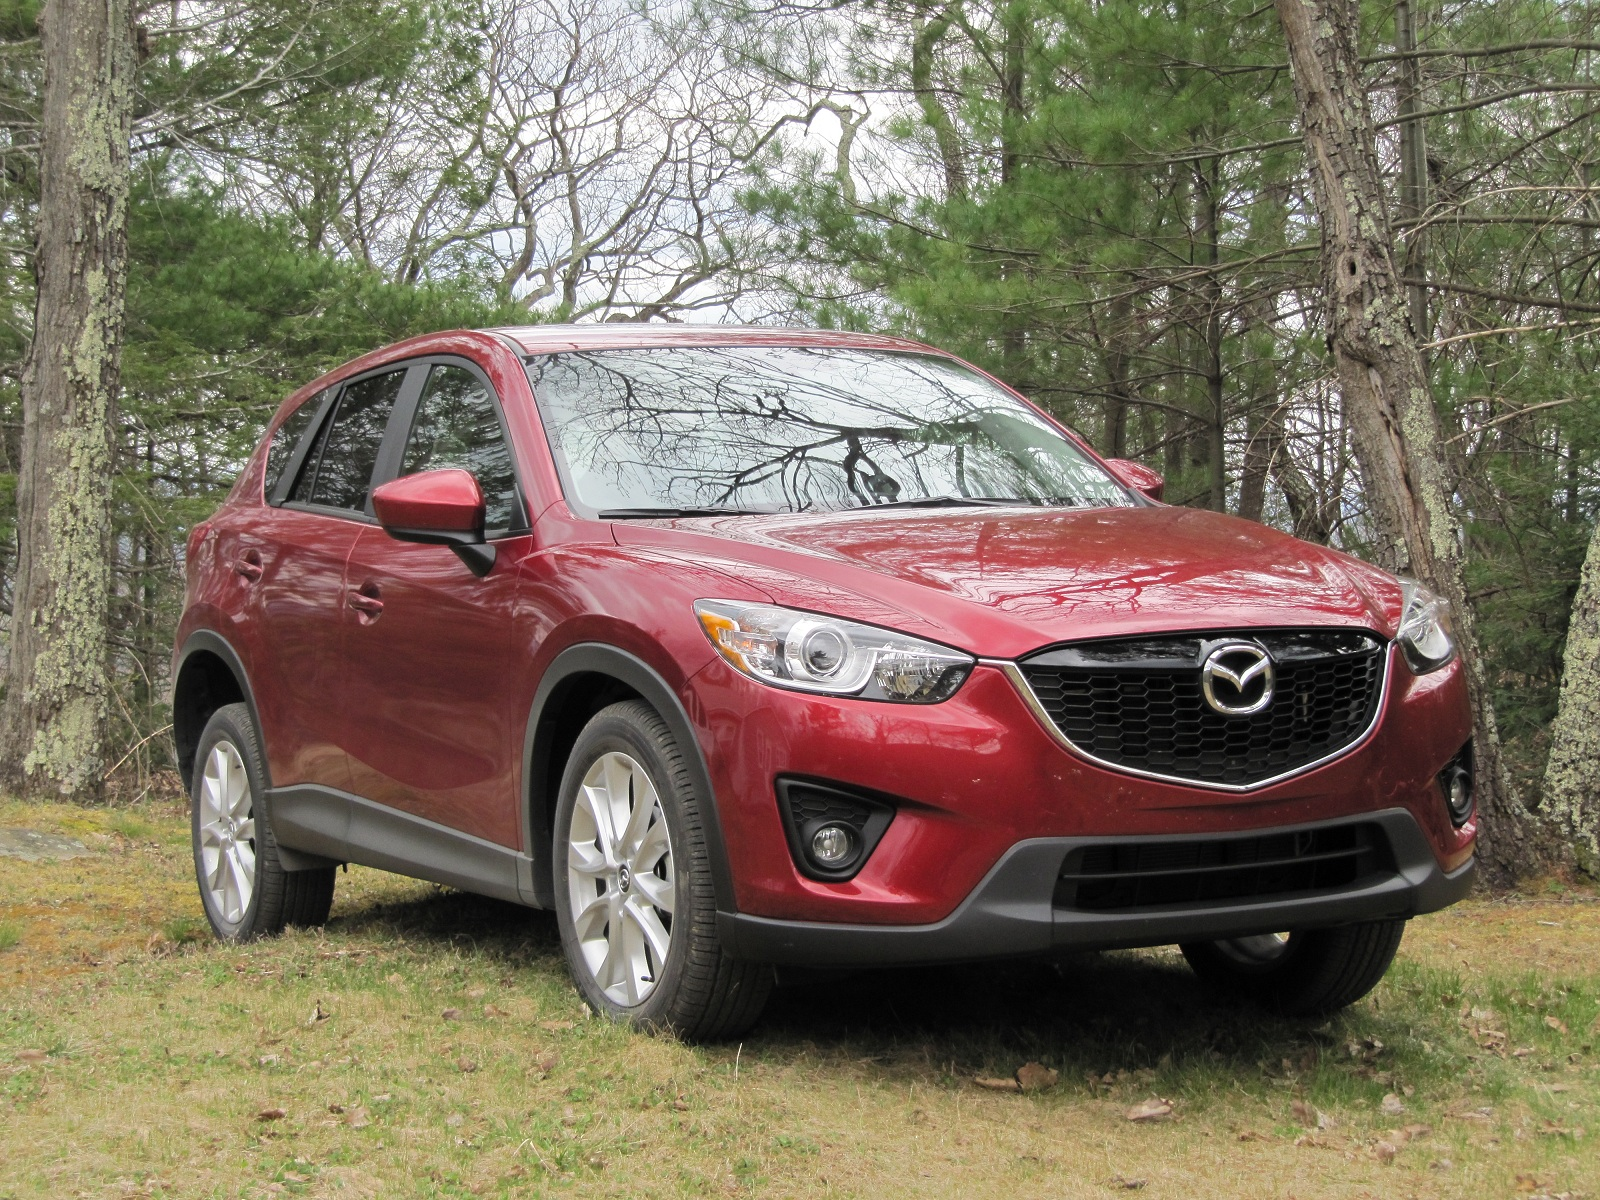 2017 Mazda Cx 5 Mazda3 Real World Gas Mileage Boost From Skyactiv Engine